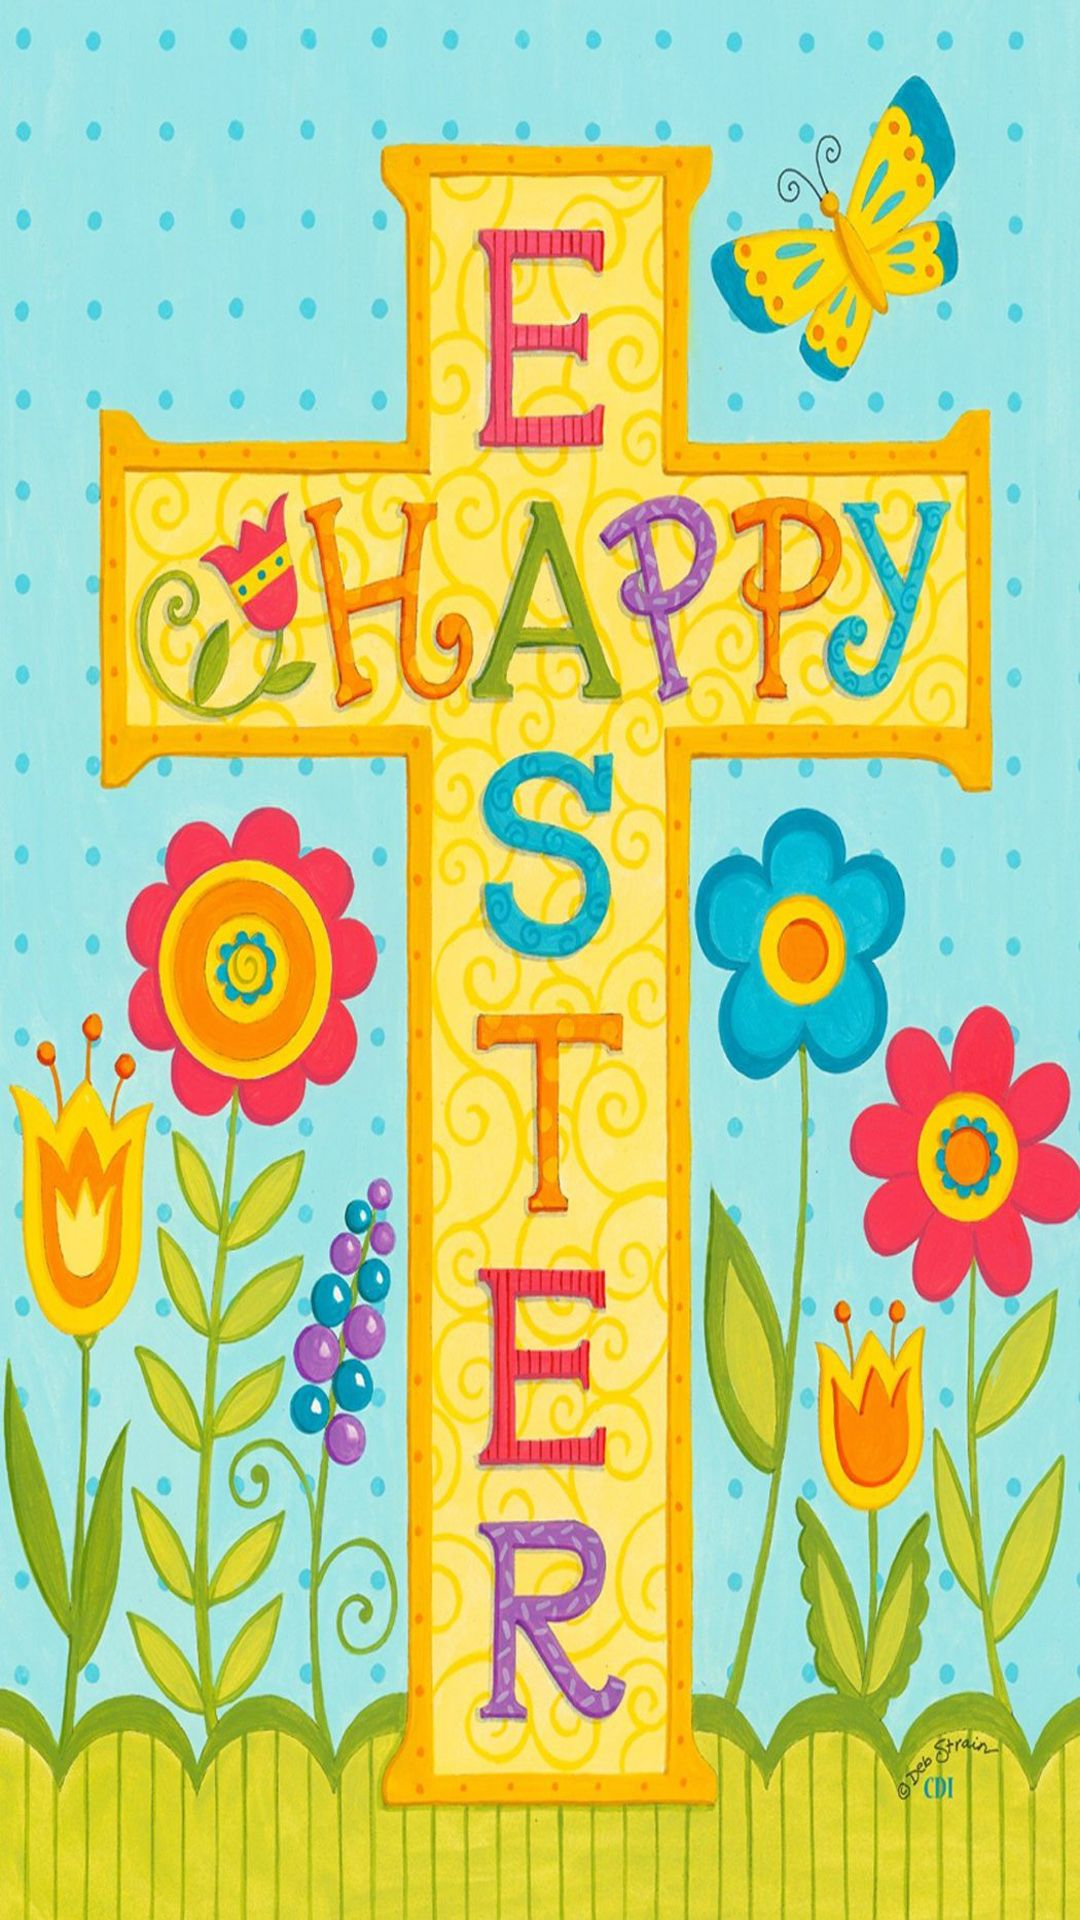 Happy Easter Messages For Facebook From Tweety Bird Happy Easter